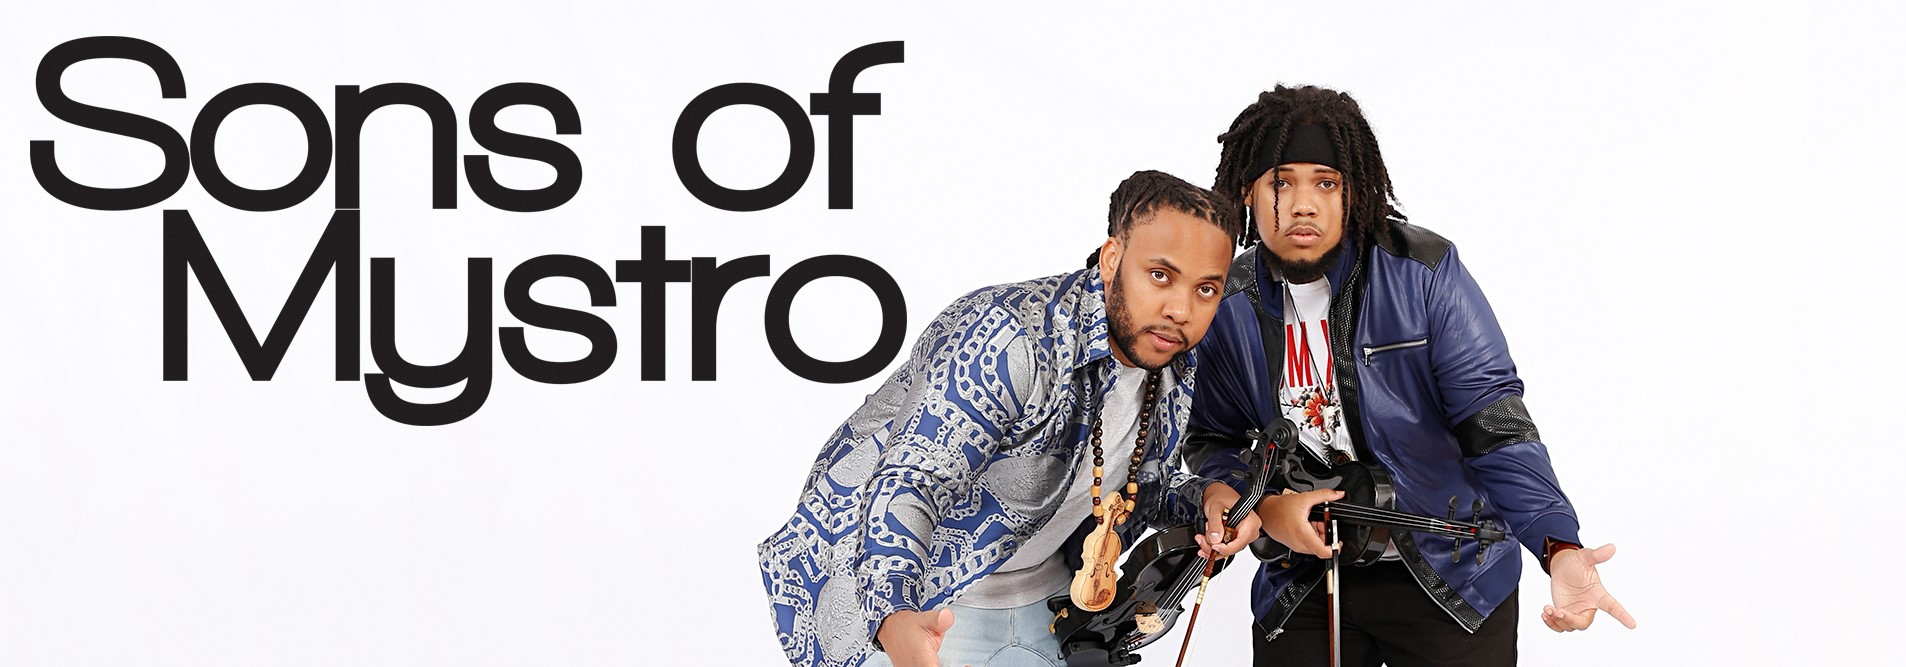 Sons of Mystro logo banner, showing the band name and the two siblings with their instruments.